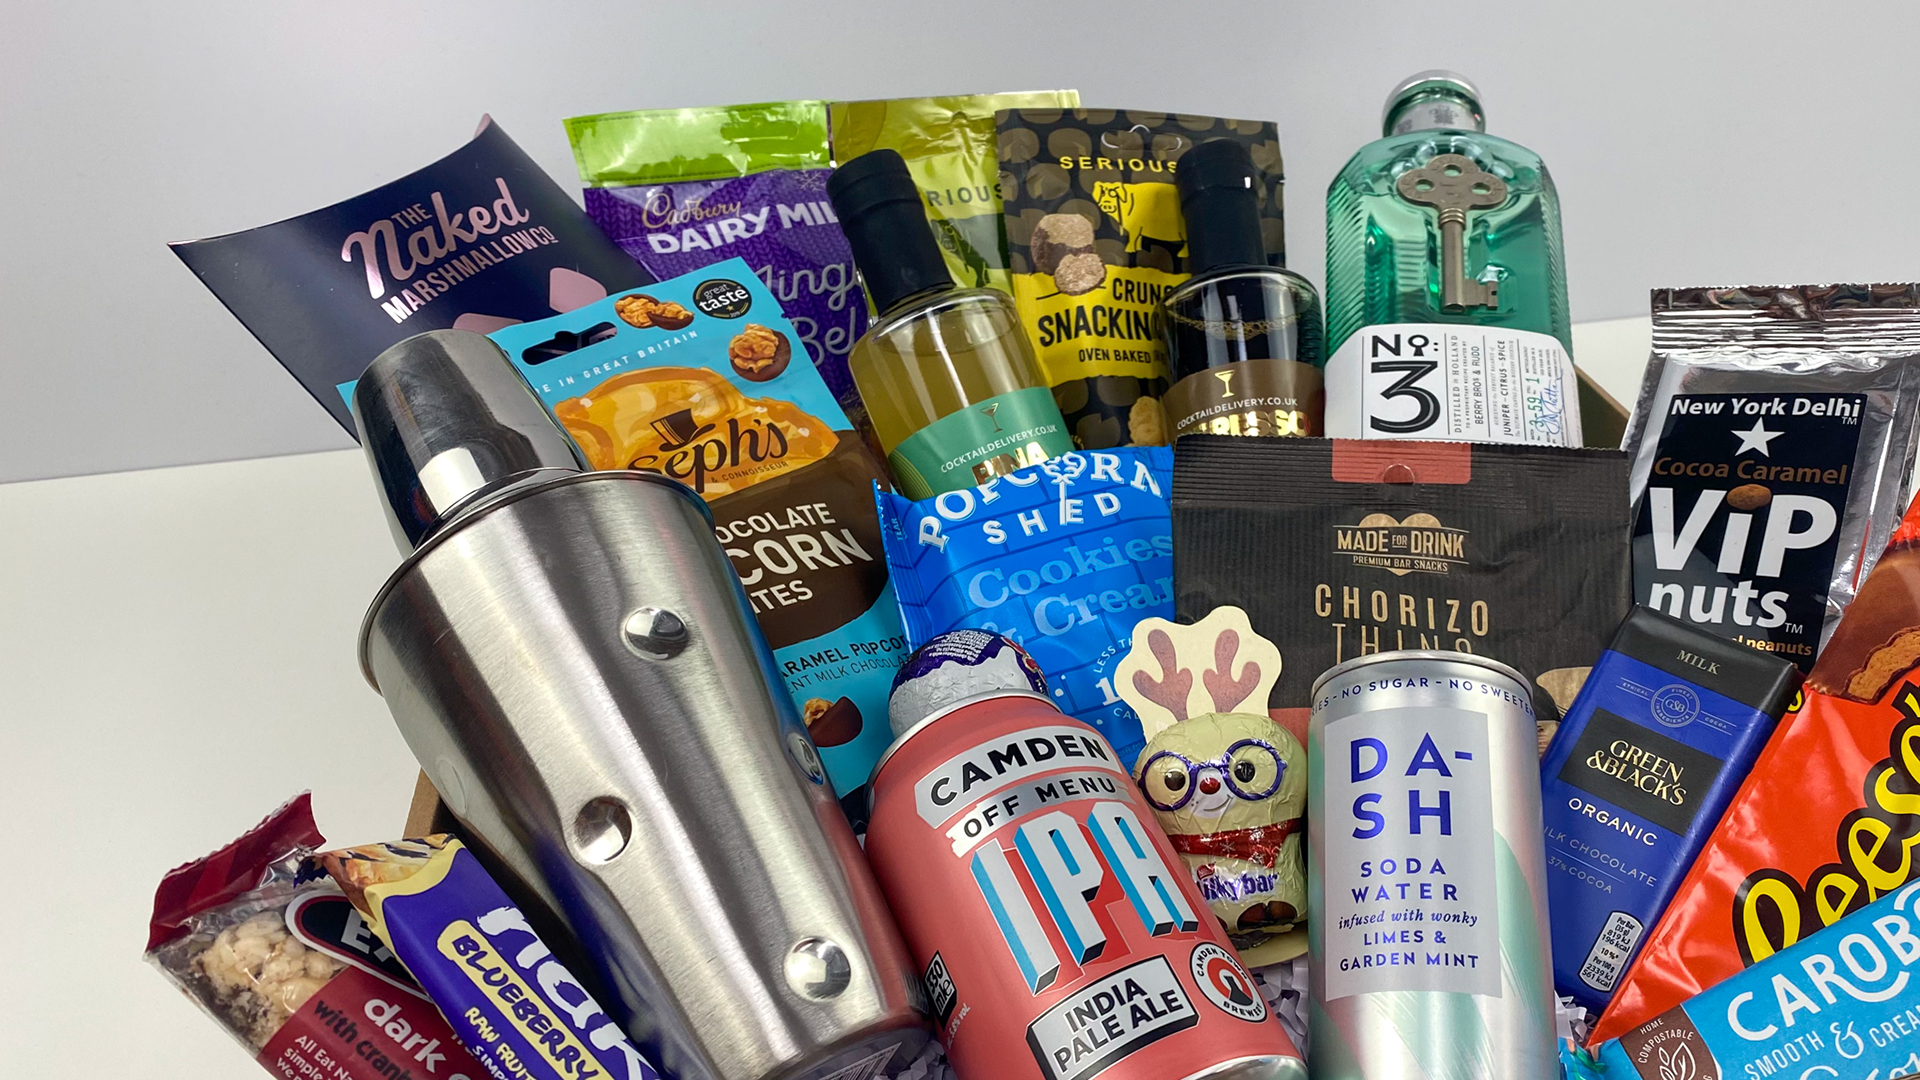 Win a Colleague Box hamper including food and drink, worth £100!